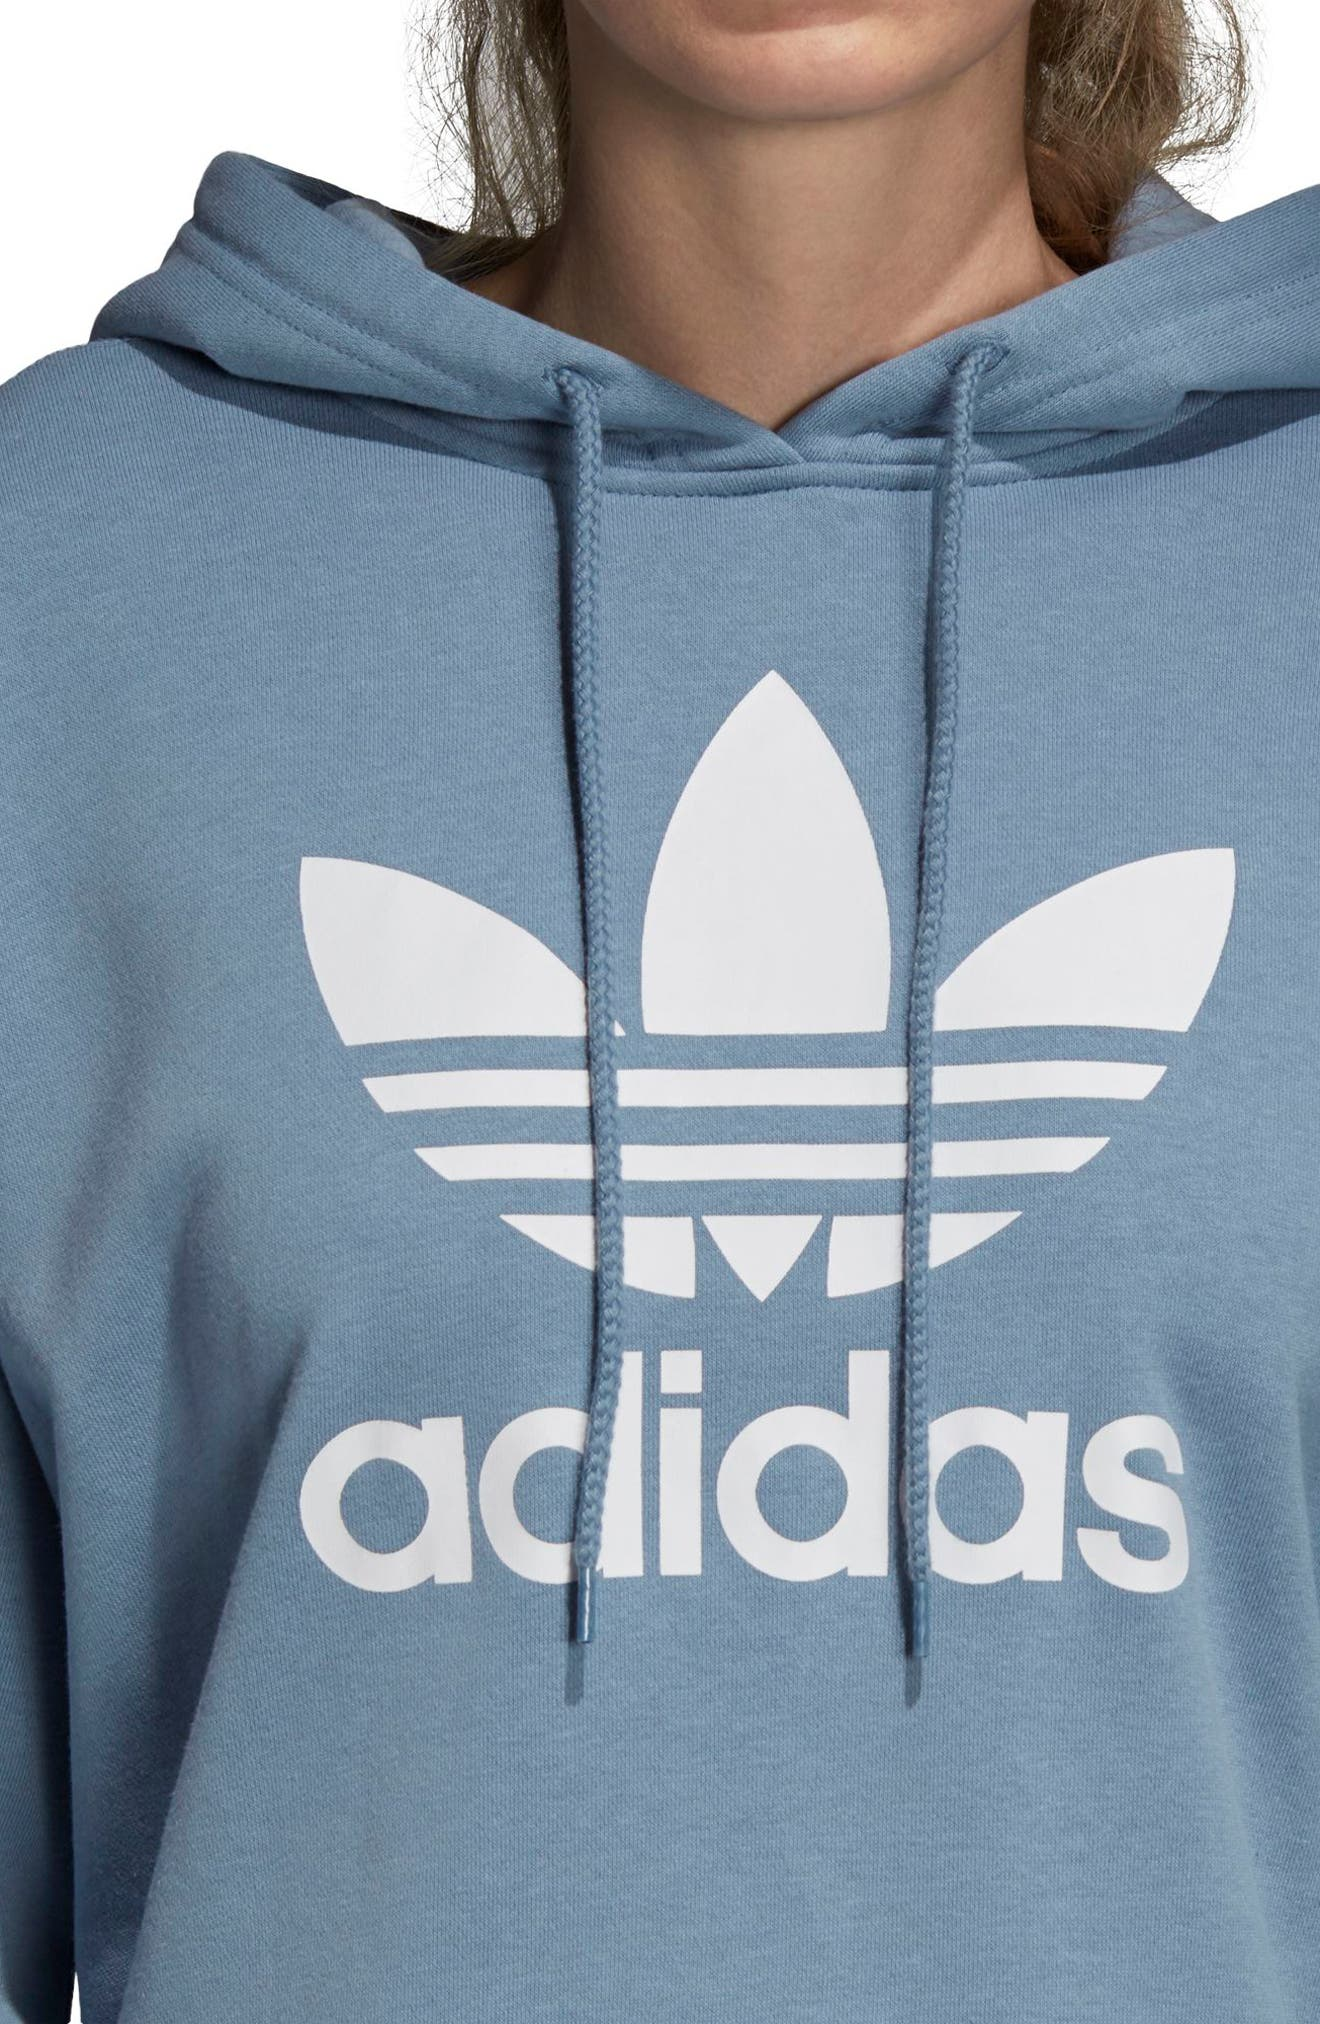 adidas Active Icons Crop Hoodie,                             Alternate thumbnail 4, color,                             060